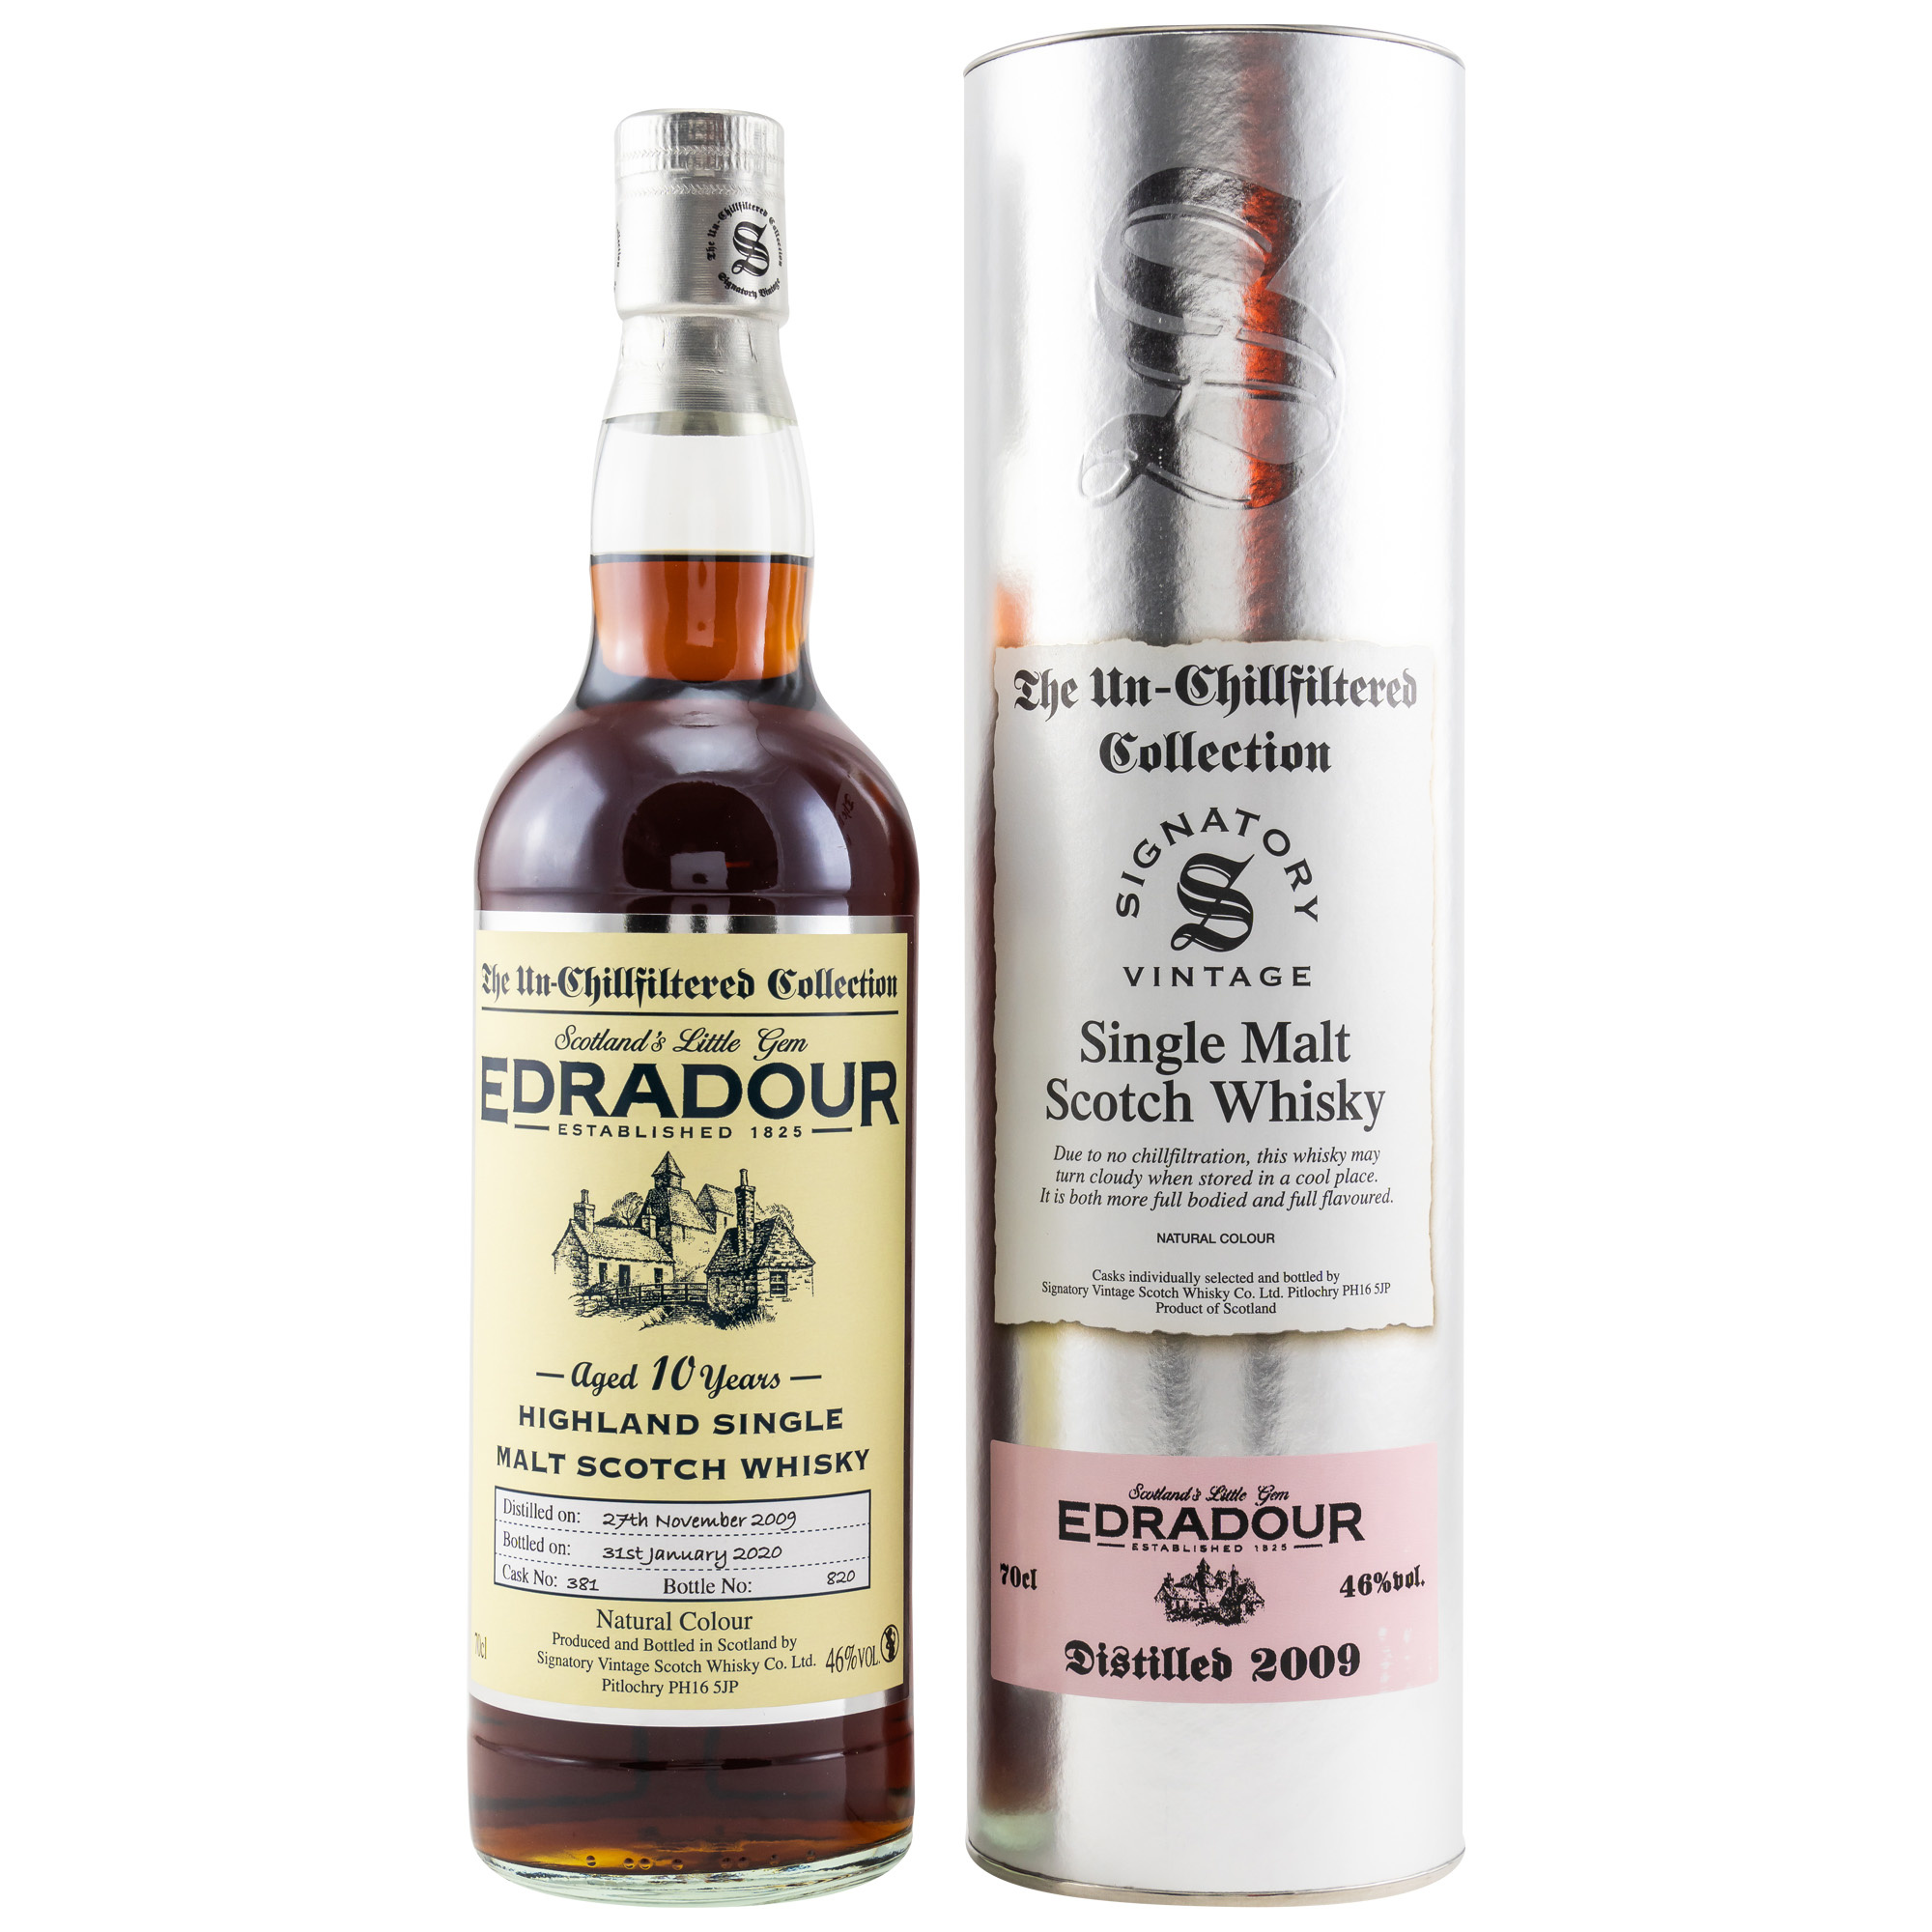 Black is back - Edradour 2009 Signatory Vintage Un-Chillfiltered Collection